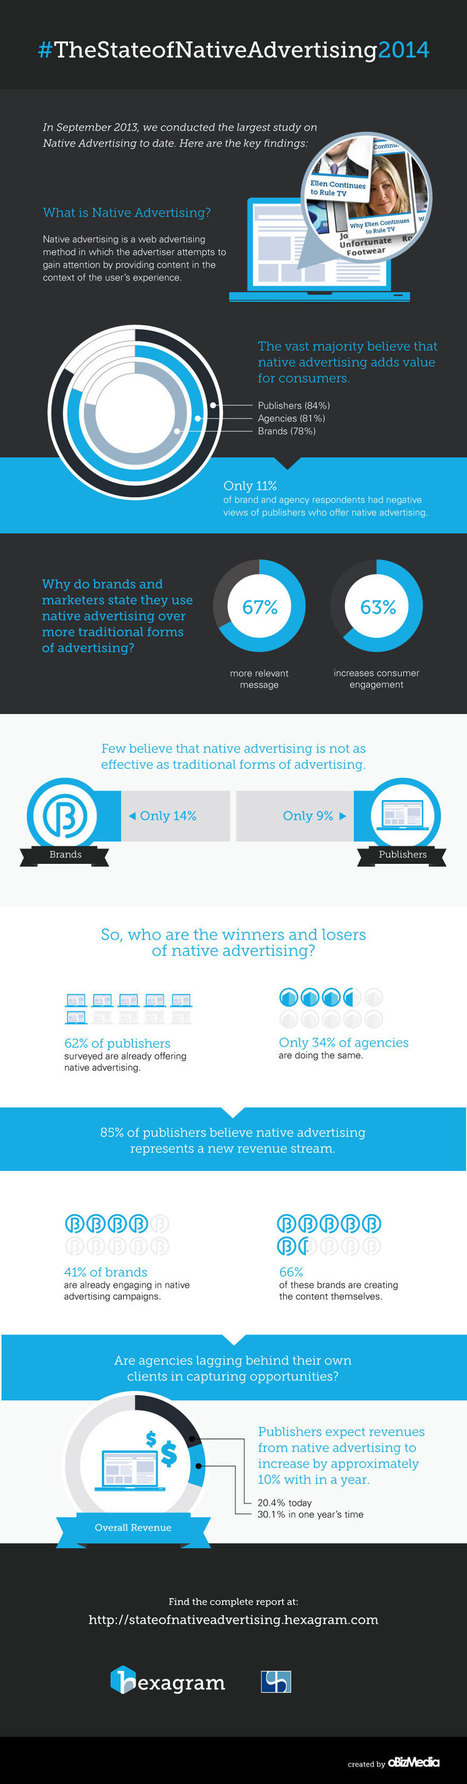 The State of Native Advertising 2014 | Measuring Online Display Advertising | Scoop.it